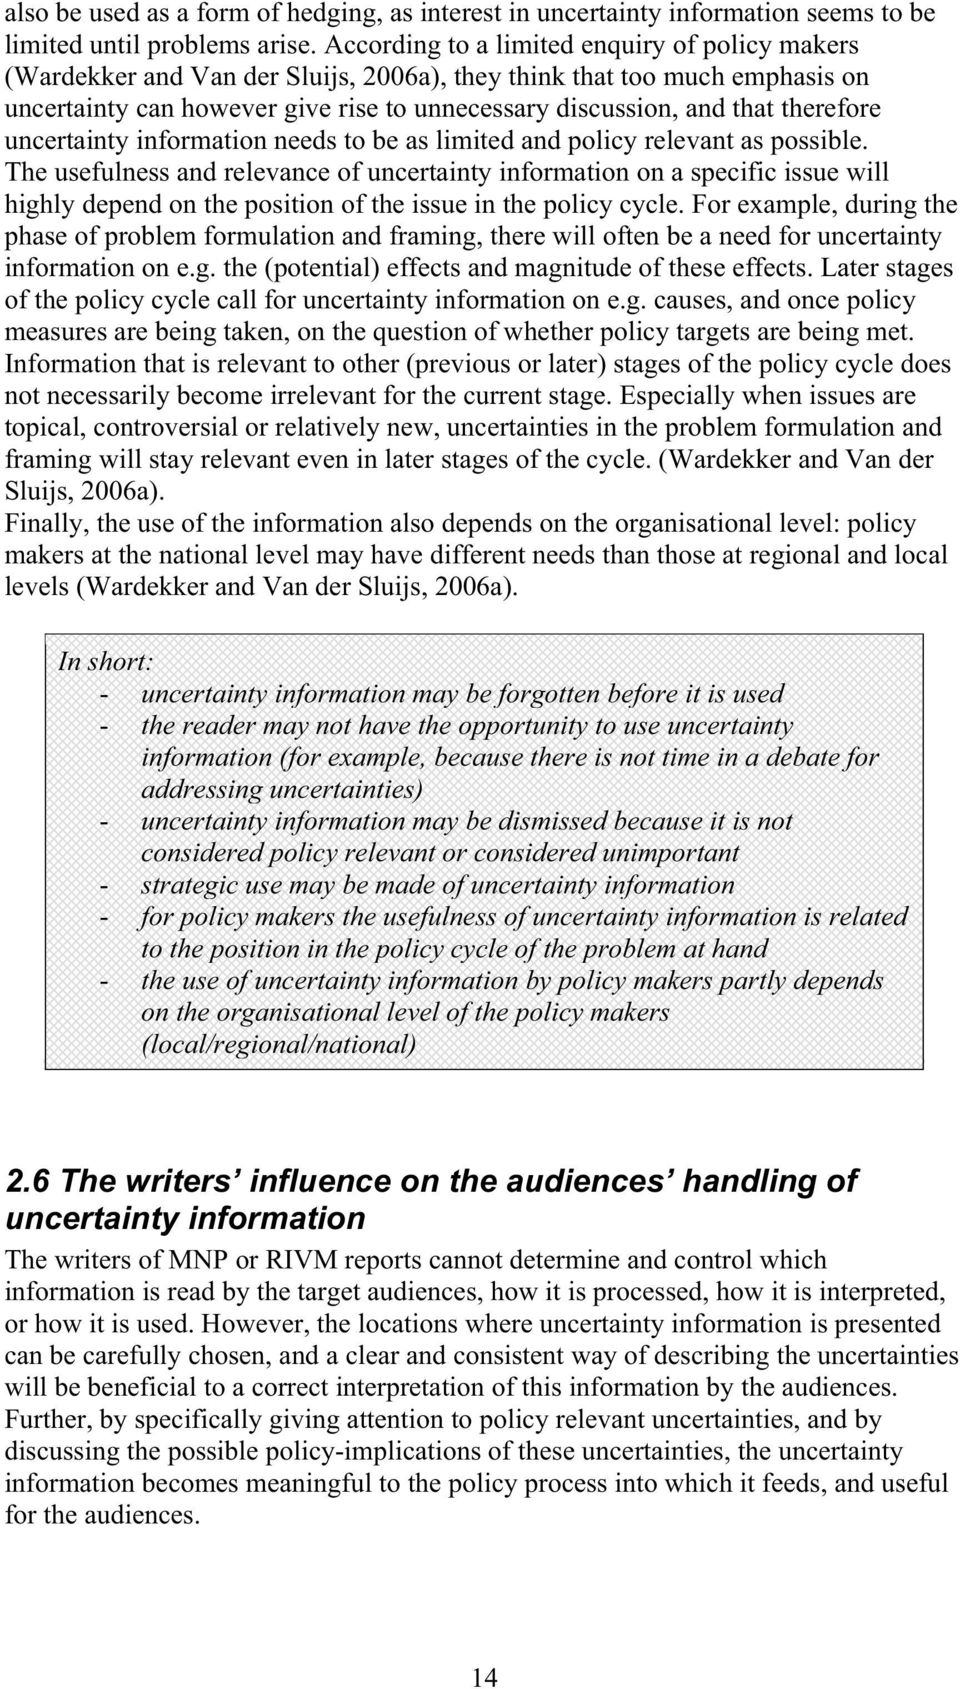 therefore uncertainty information needs to be as limited and policy relevant as possible.